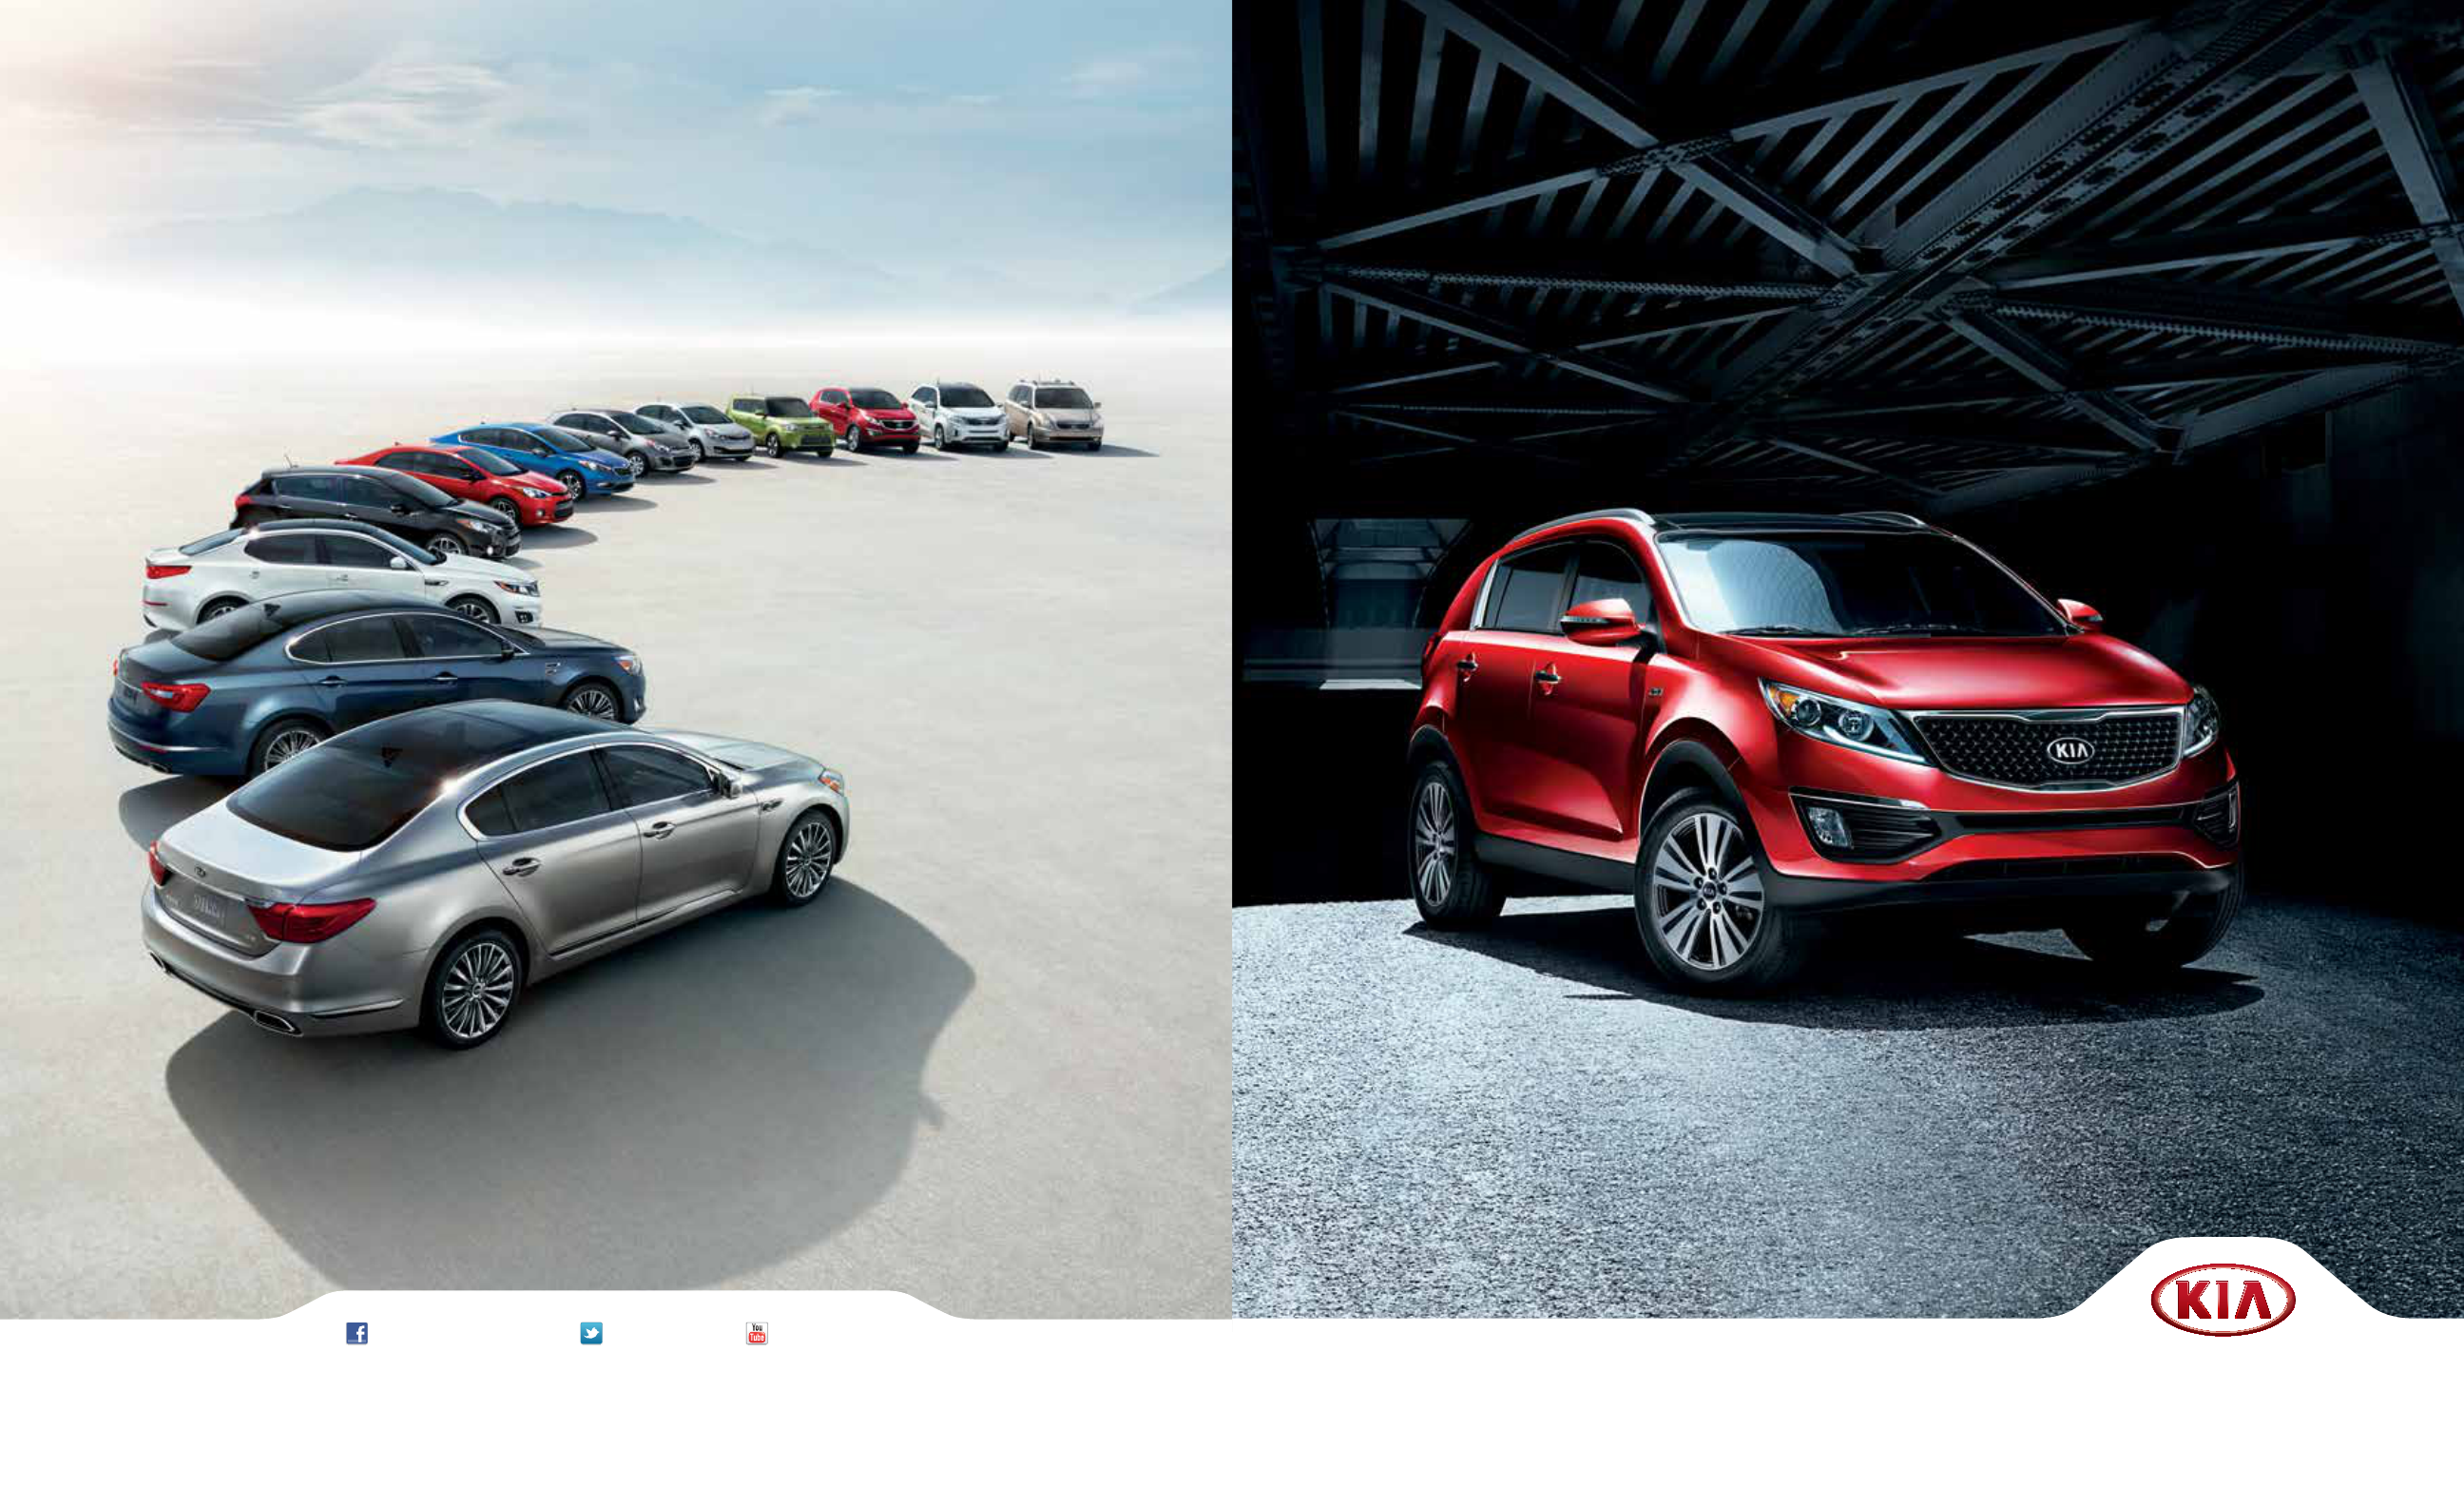 performance news nice limited sportage with to here edition kia is along axis auto offer